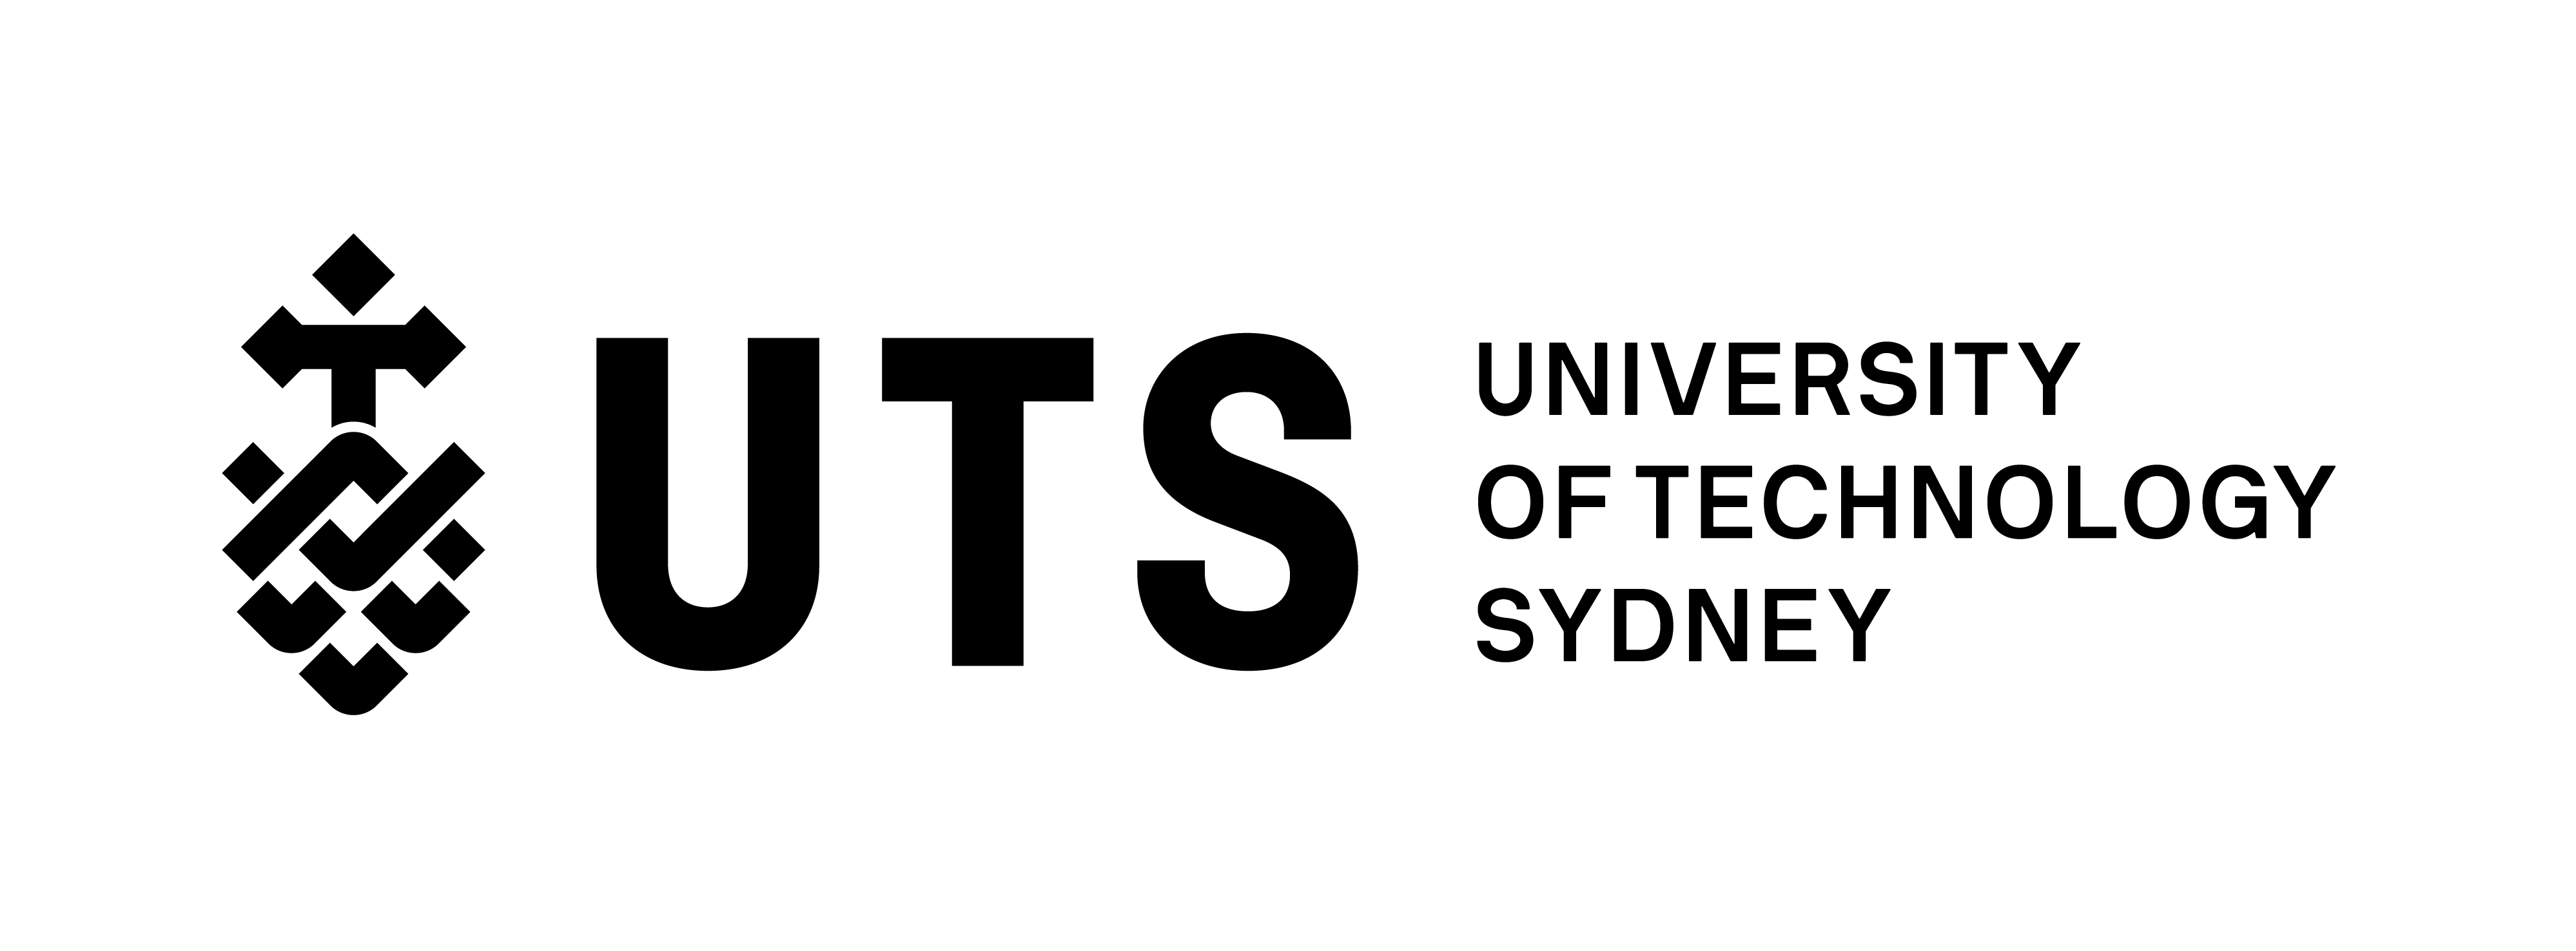 University of Technology Sydney - Bachelor of Advanced Science / Bachelor of Creative Intelligence and Innovation